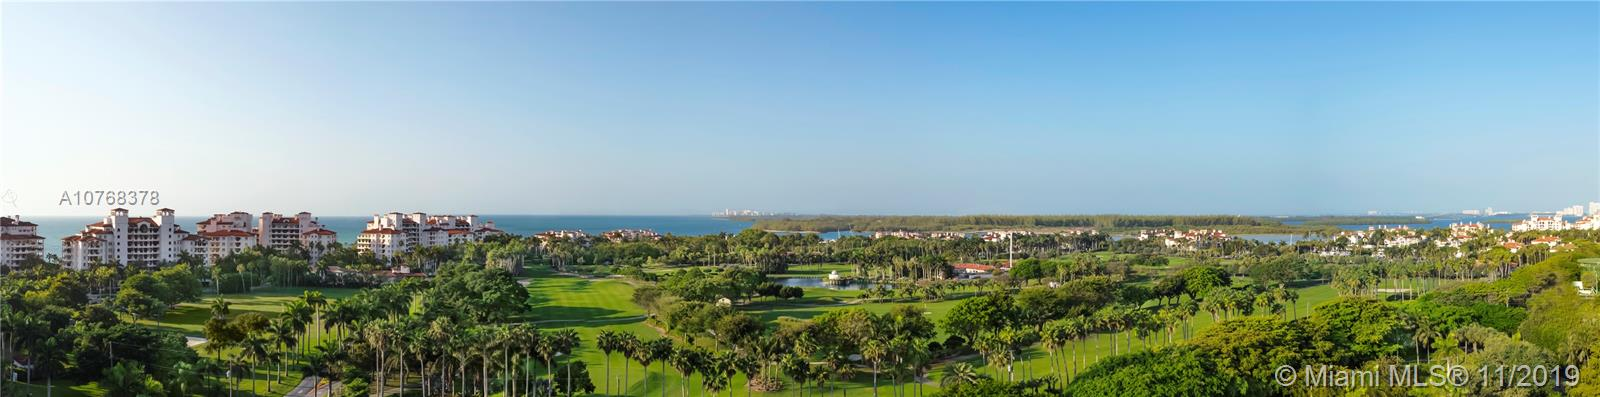 6891 Fisher Island Dr #6891